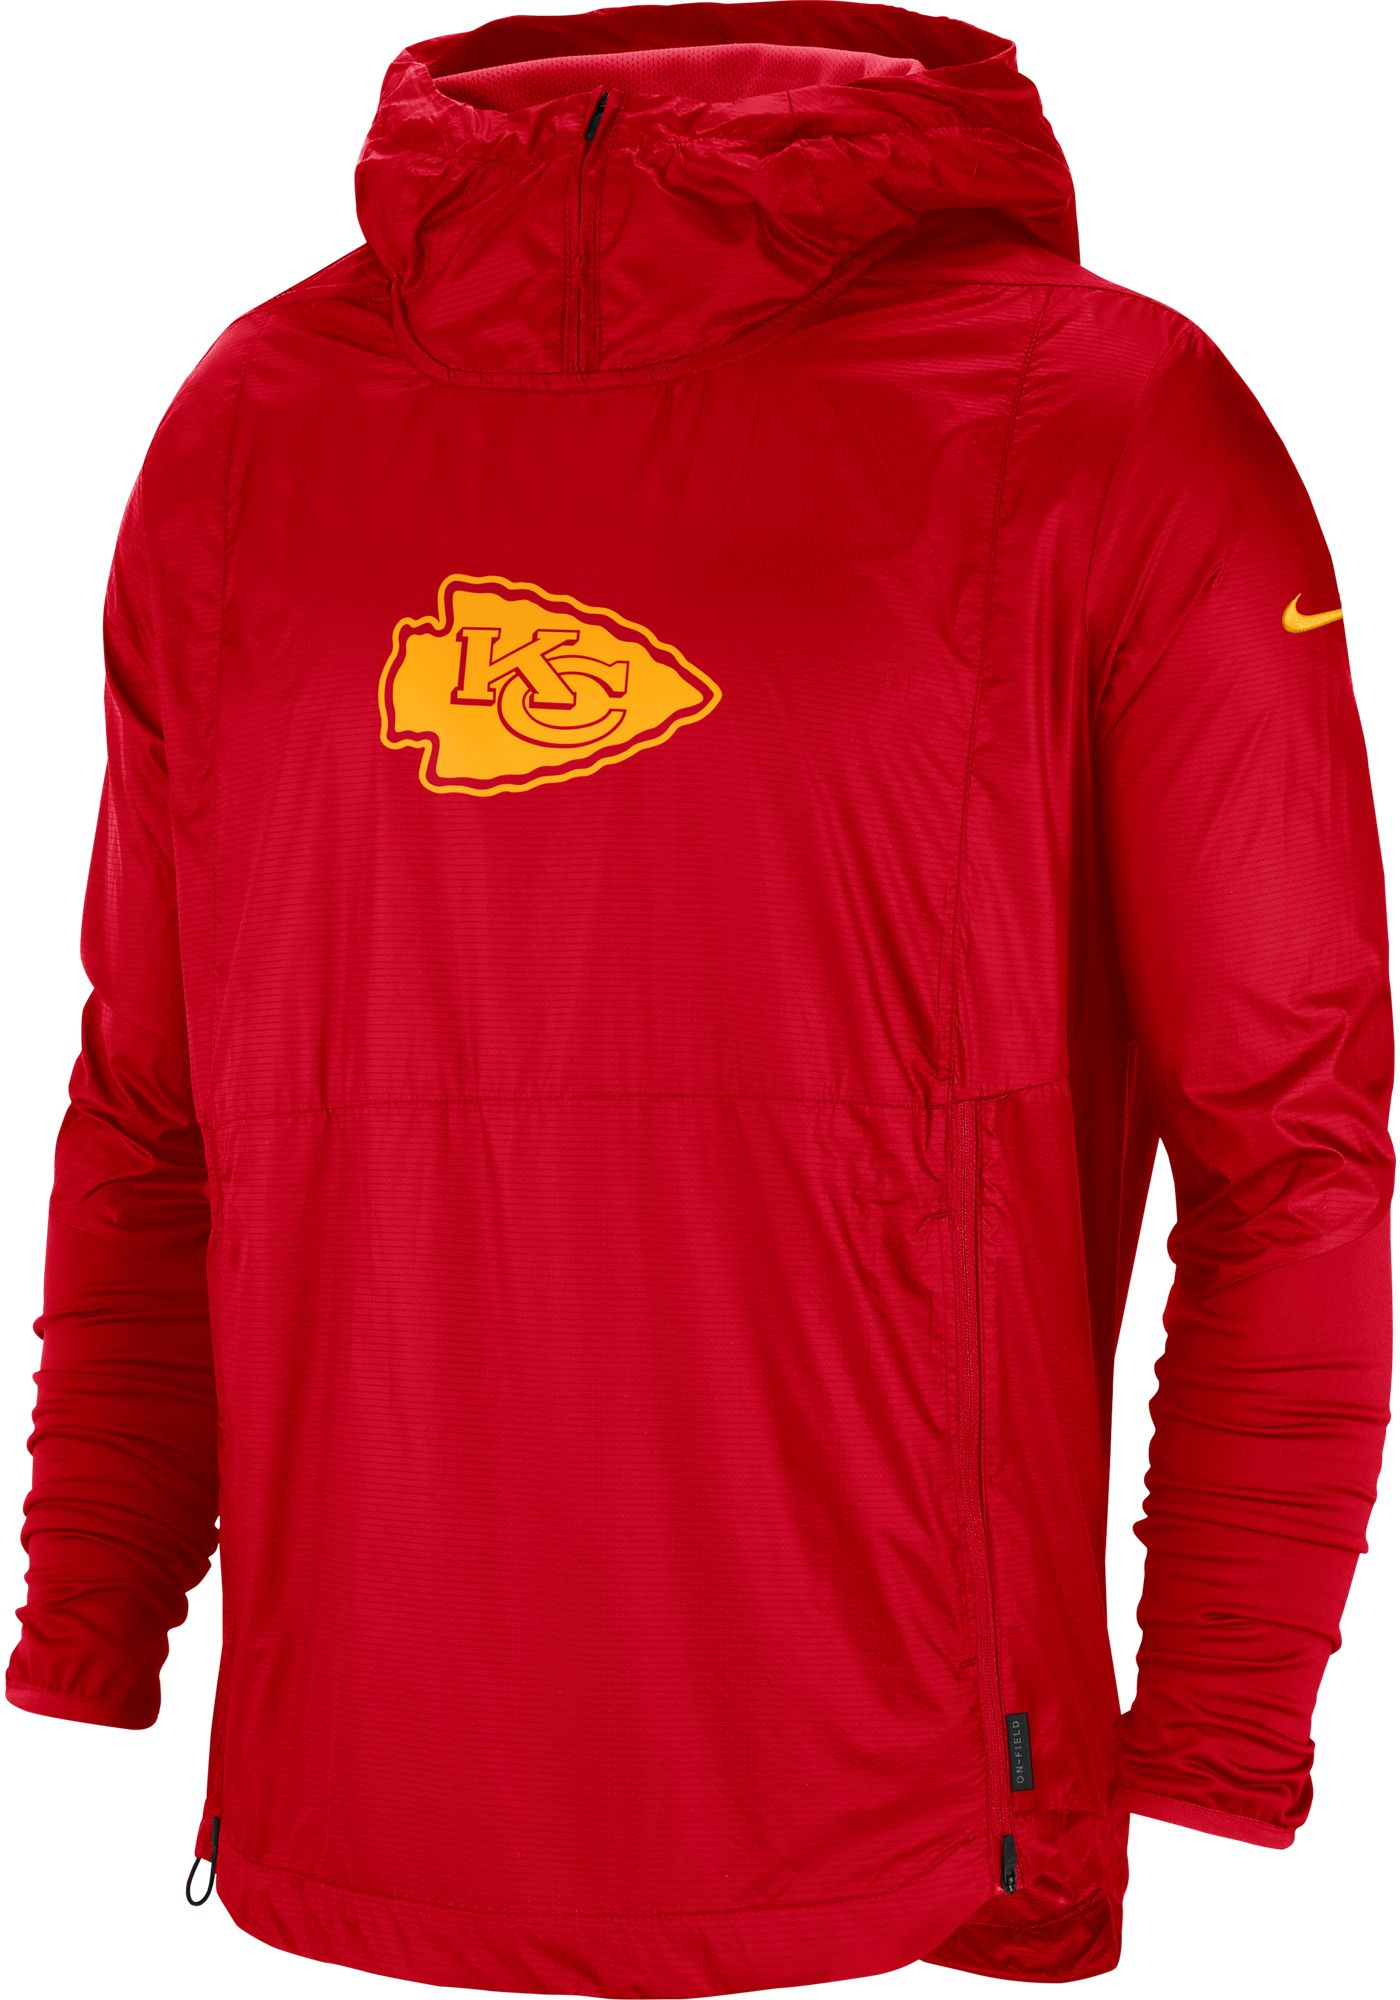 Nike Men's Kansas City Chiefs Sideline Repel Player Red Jacket